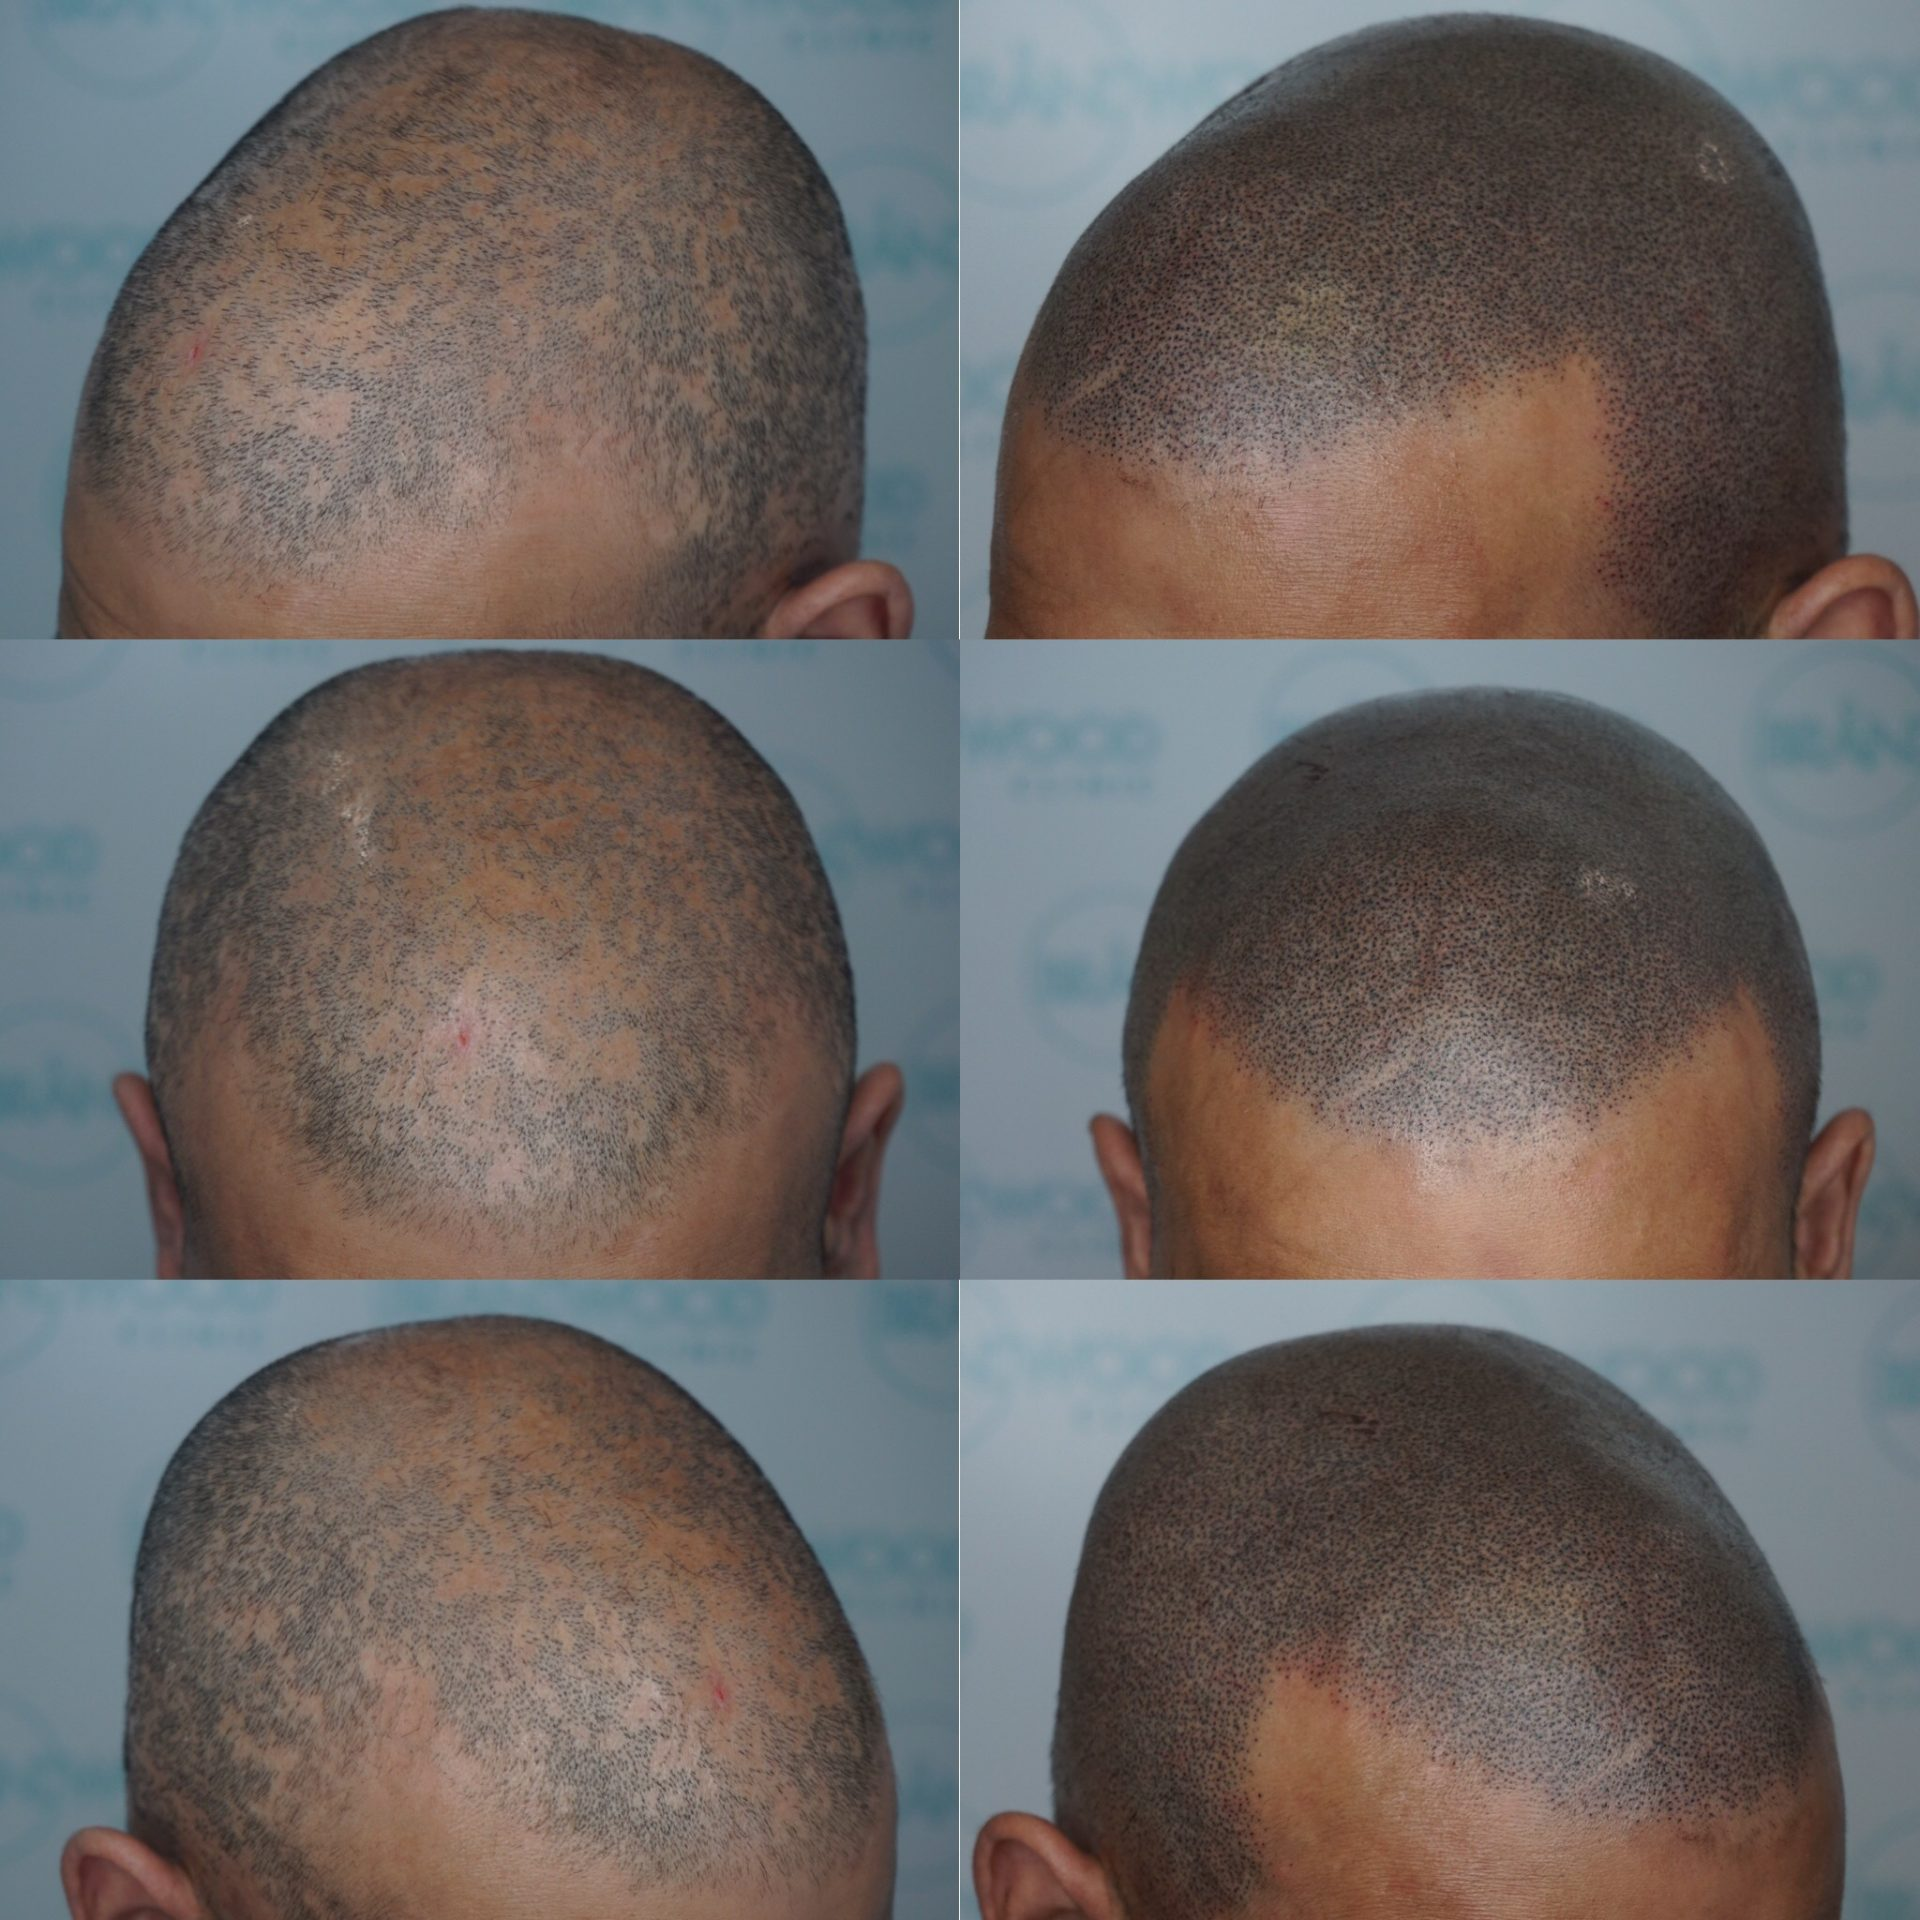 Cicatricial Alopecia before and after SMP